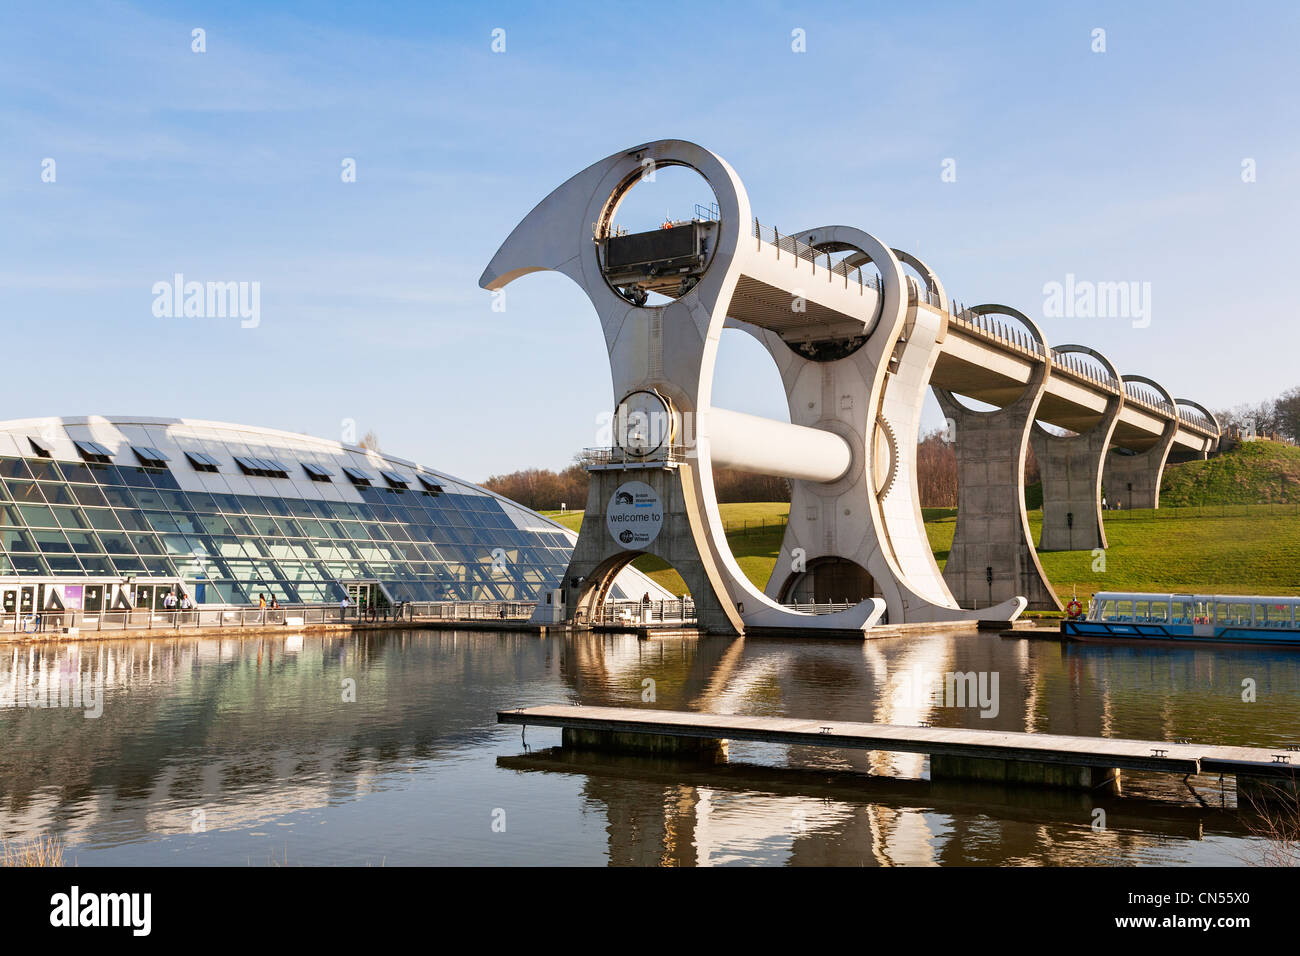 The Falkirk Wheel boat lift on the Union Canal, Falkirk, Scotland. - Stock Image